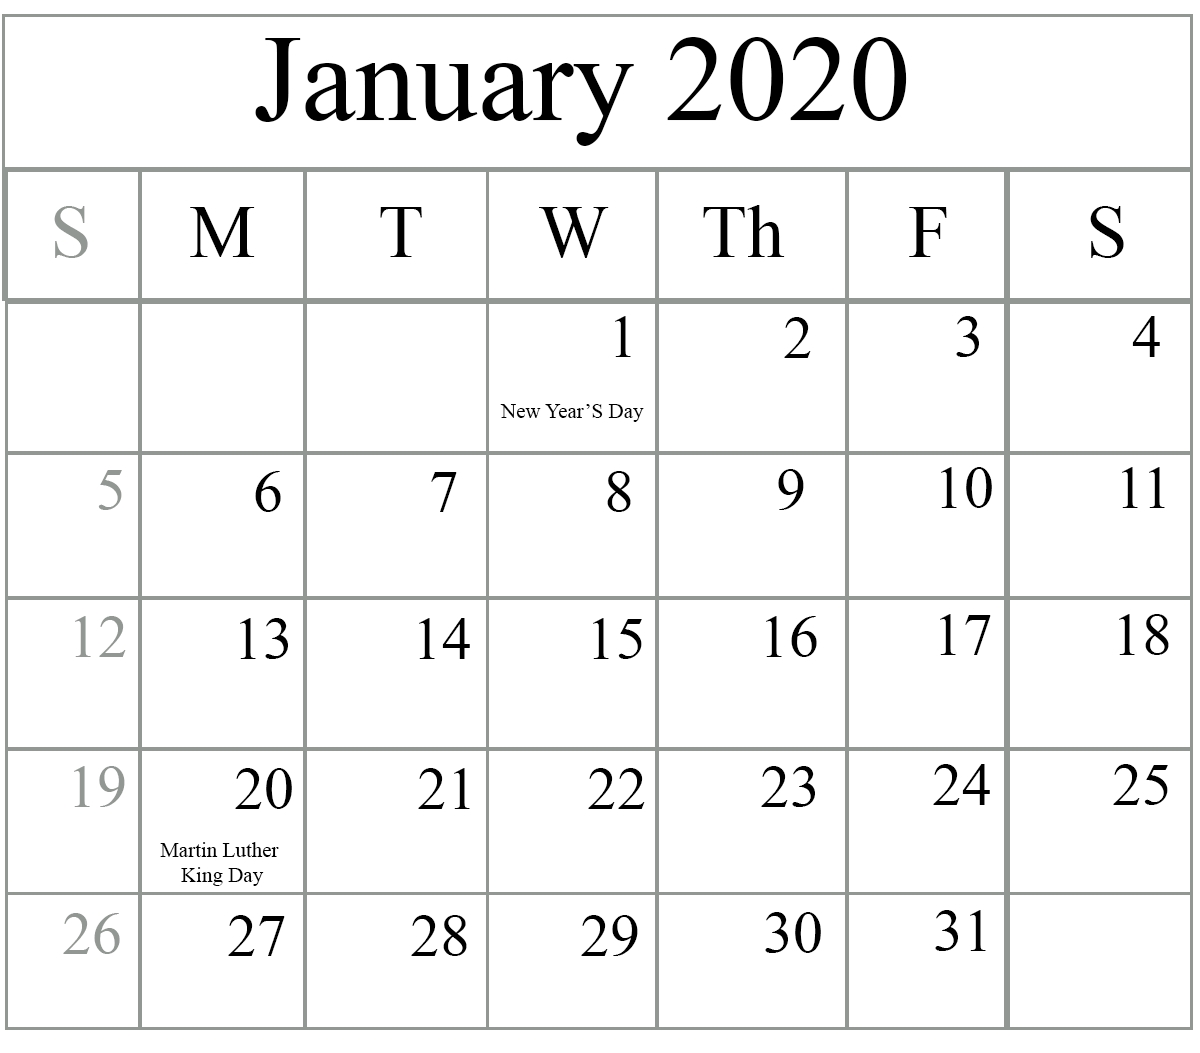 January 2020 Calendar Pdf | Printable Calendar Template